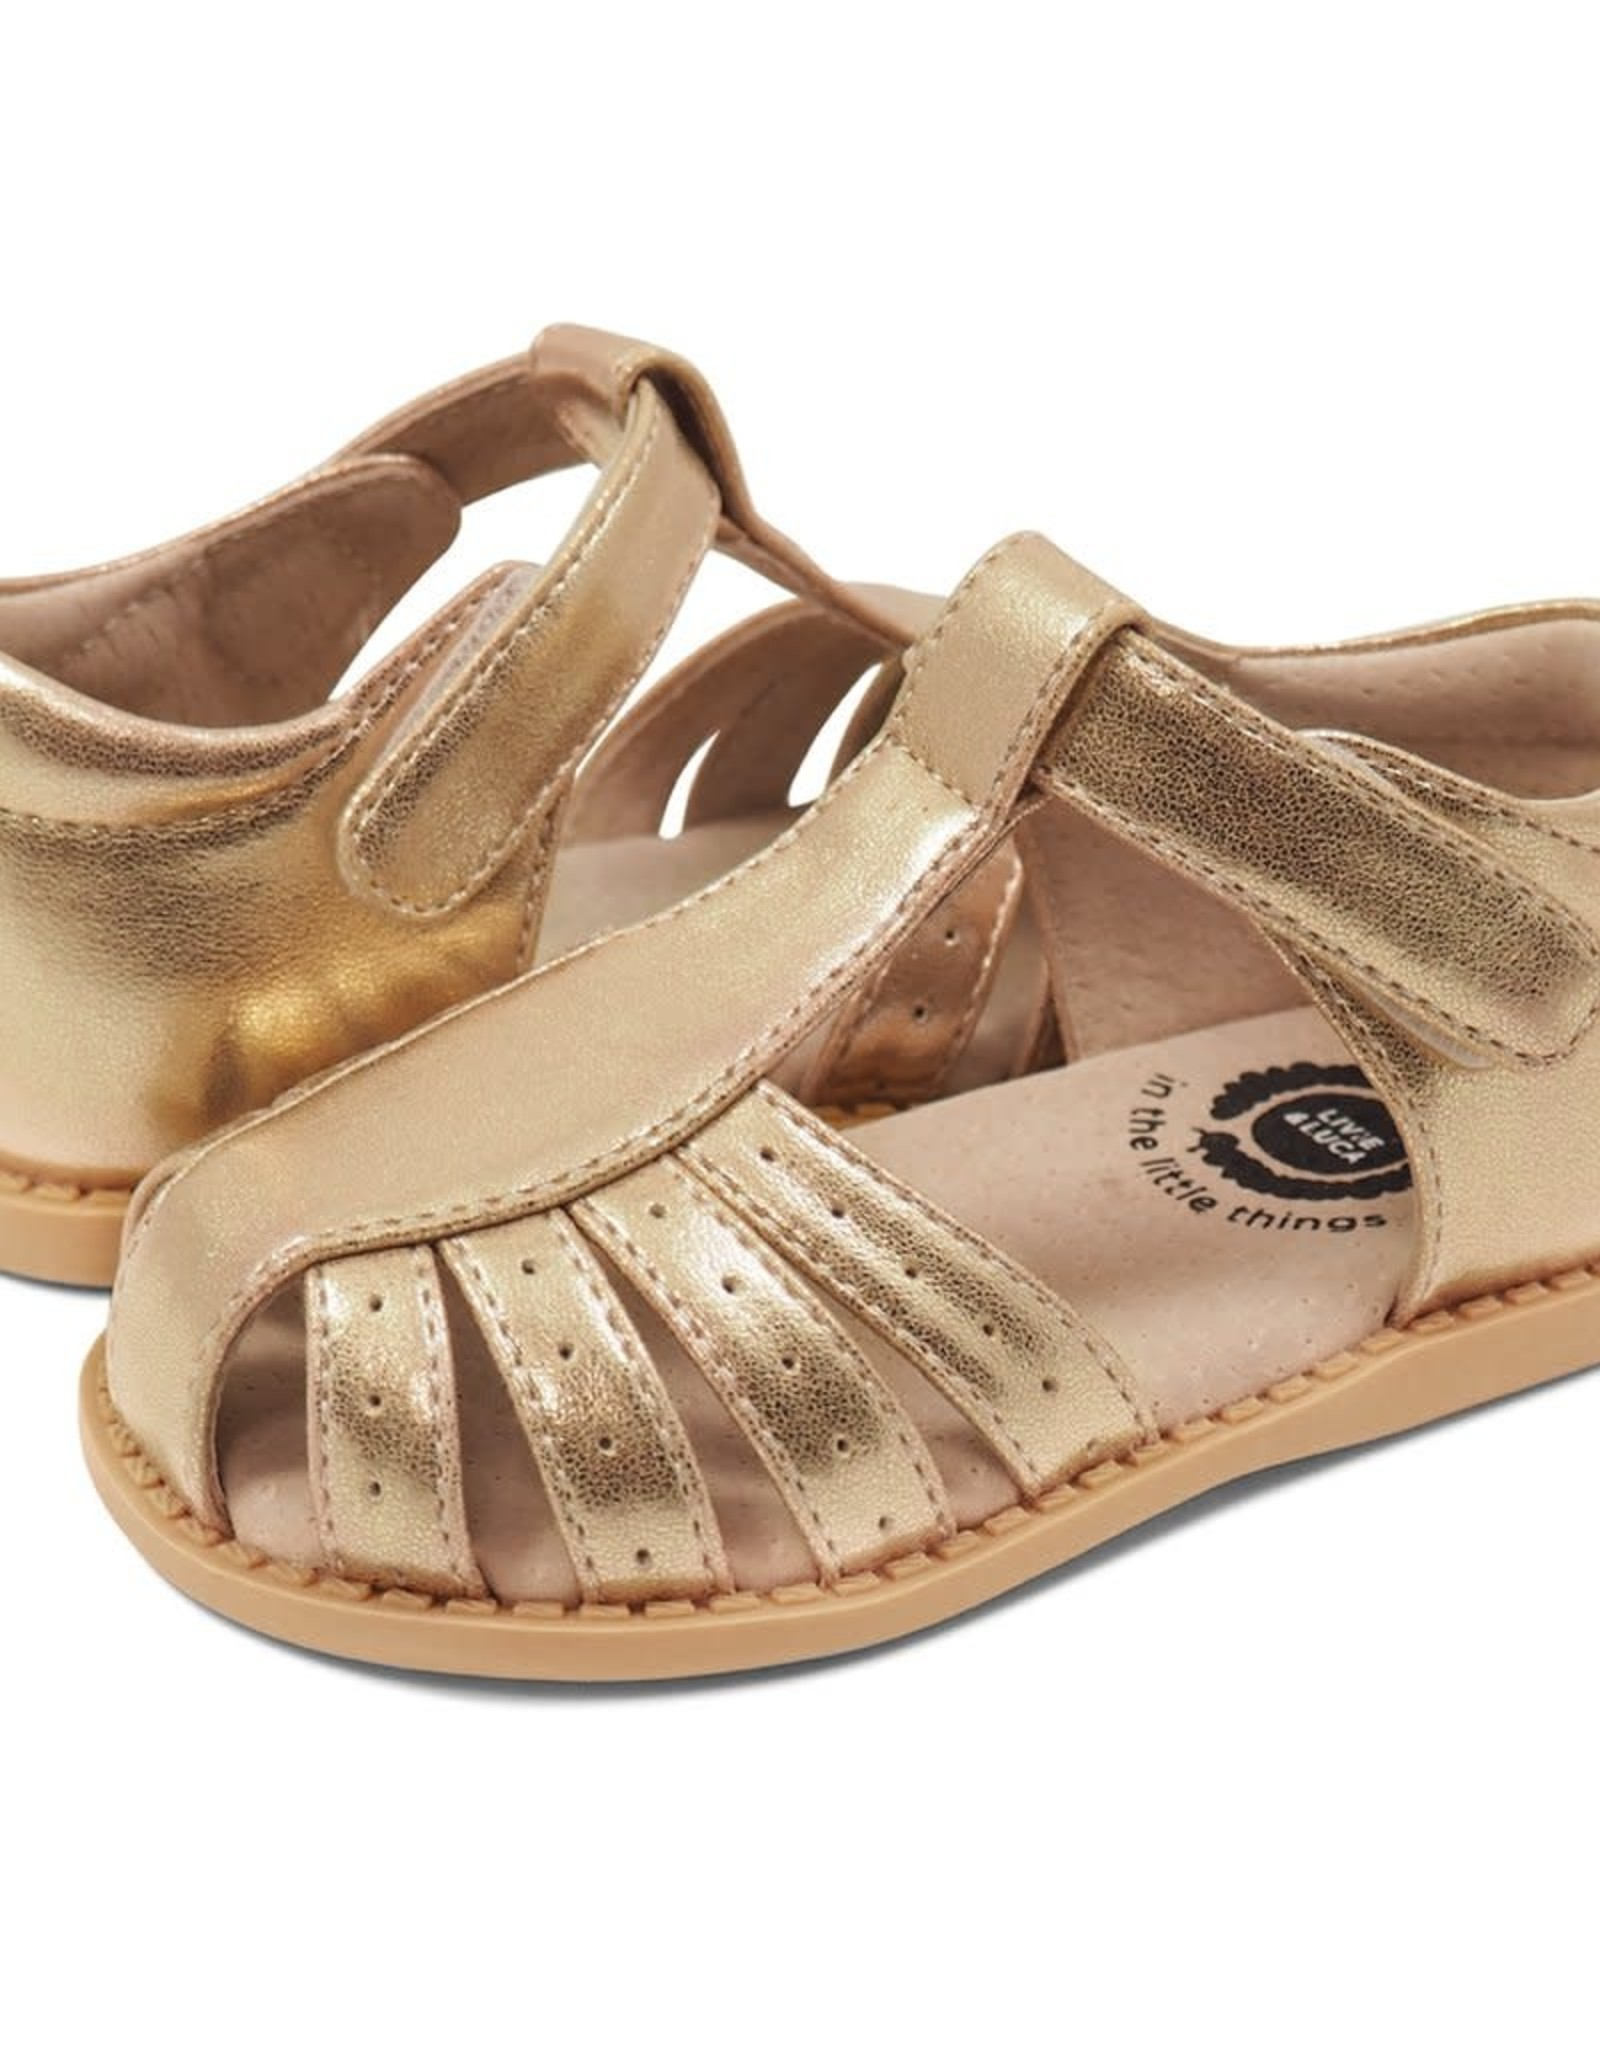 Livie and Luca PAZ Sandal in Gold Metallic